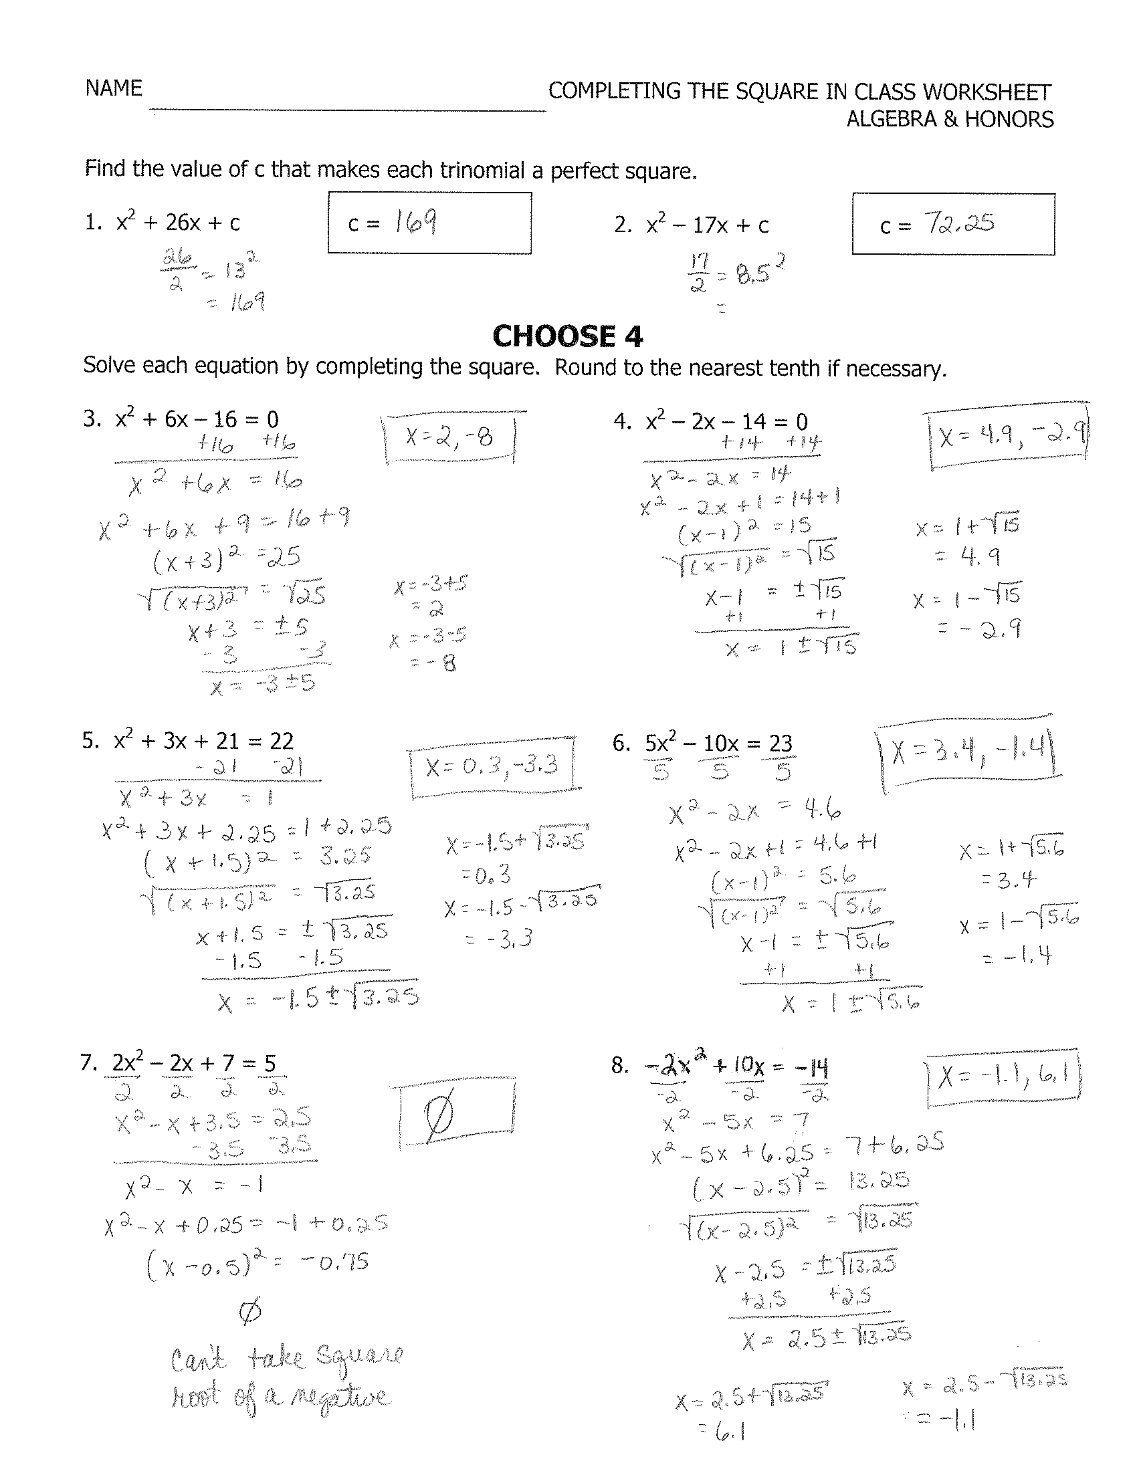 Worksheets Complete The Square Worksheet complete the square worksheet equivalent fractions blank 10 free magazines from fcpickeringtonk12ohus algebra honors completing in class name fcpickeringtonk12ohus